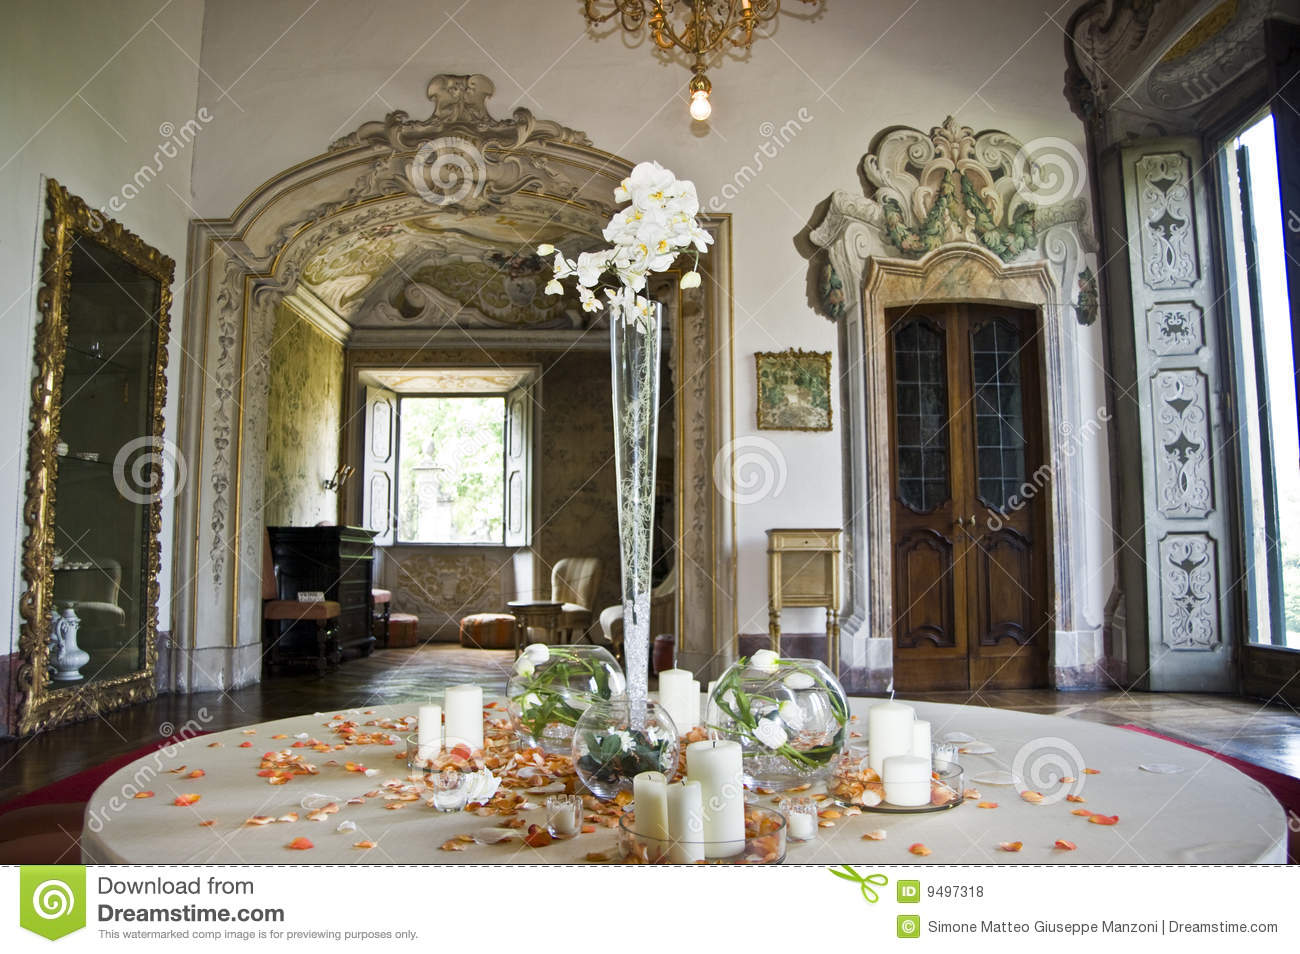 Neoclassical Decoration For A Wedding In An Italian Villa